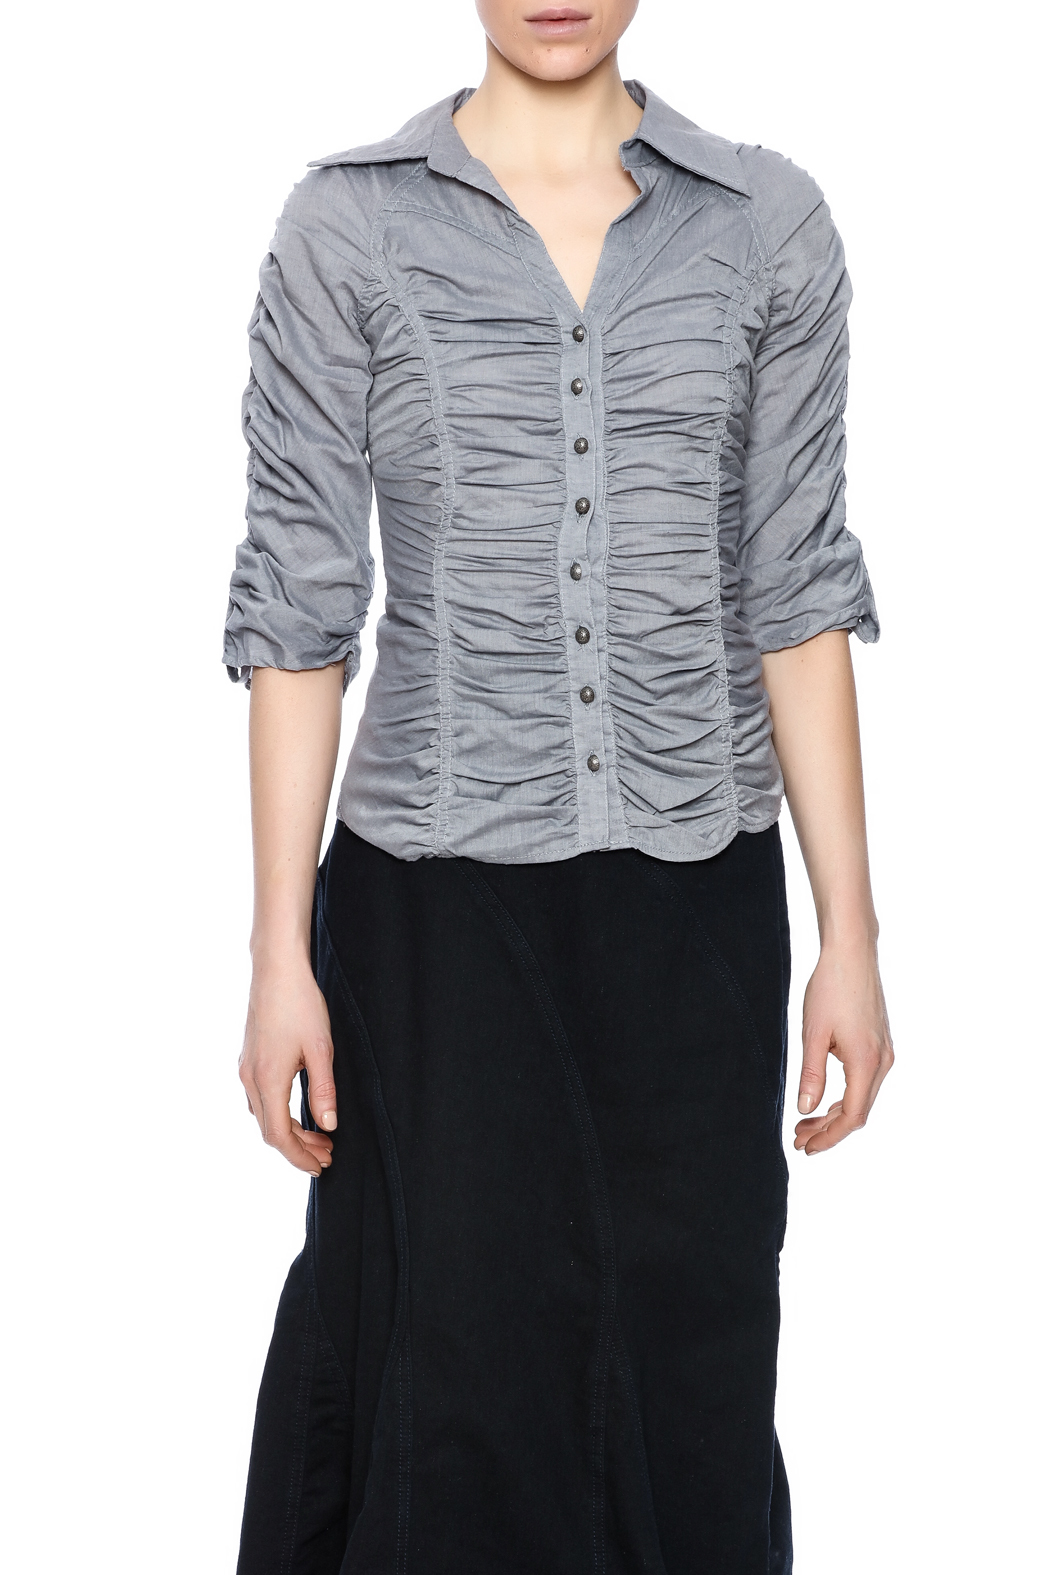 Roma Premium Collection Shirred Button Blouse - Side Cropped Image